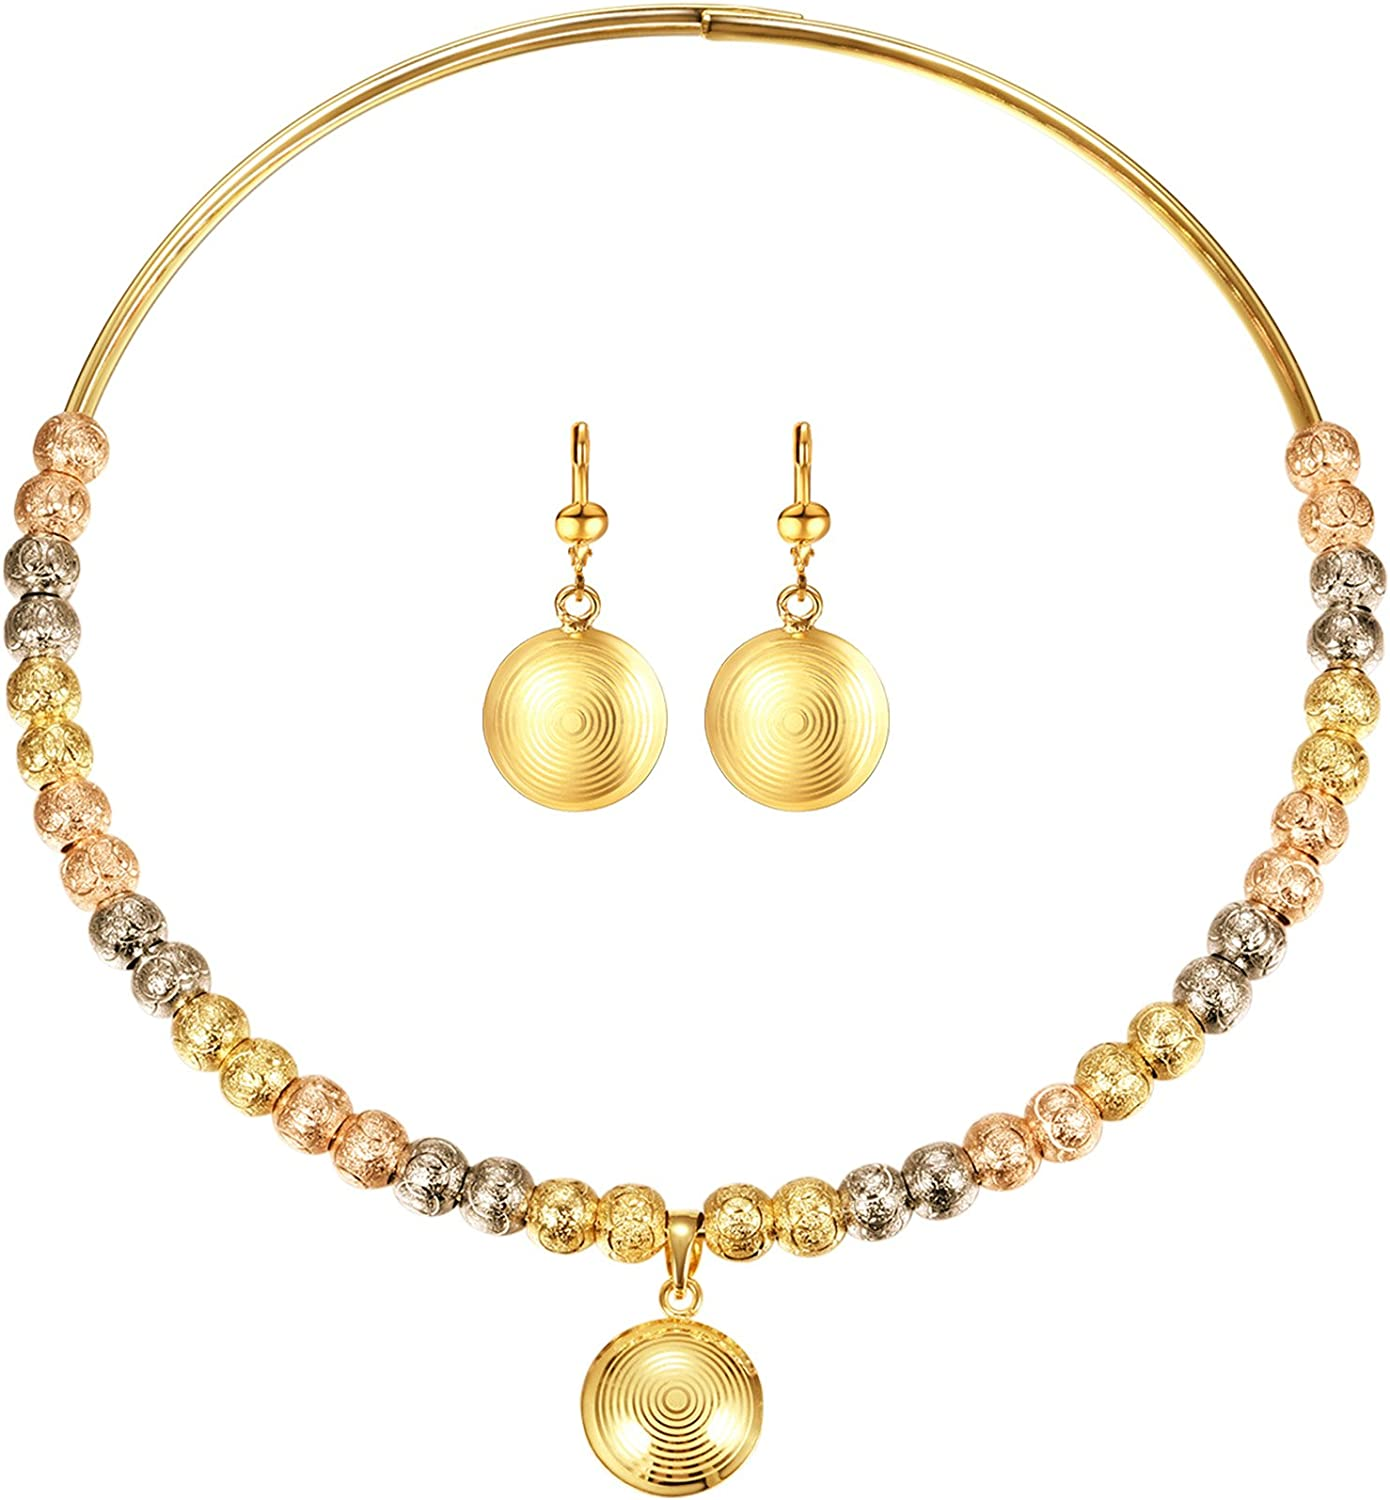 4 Sale price years warranty FOCALOOK Indian Traditional Jewelry Set 18K for Gold Women Plate